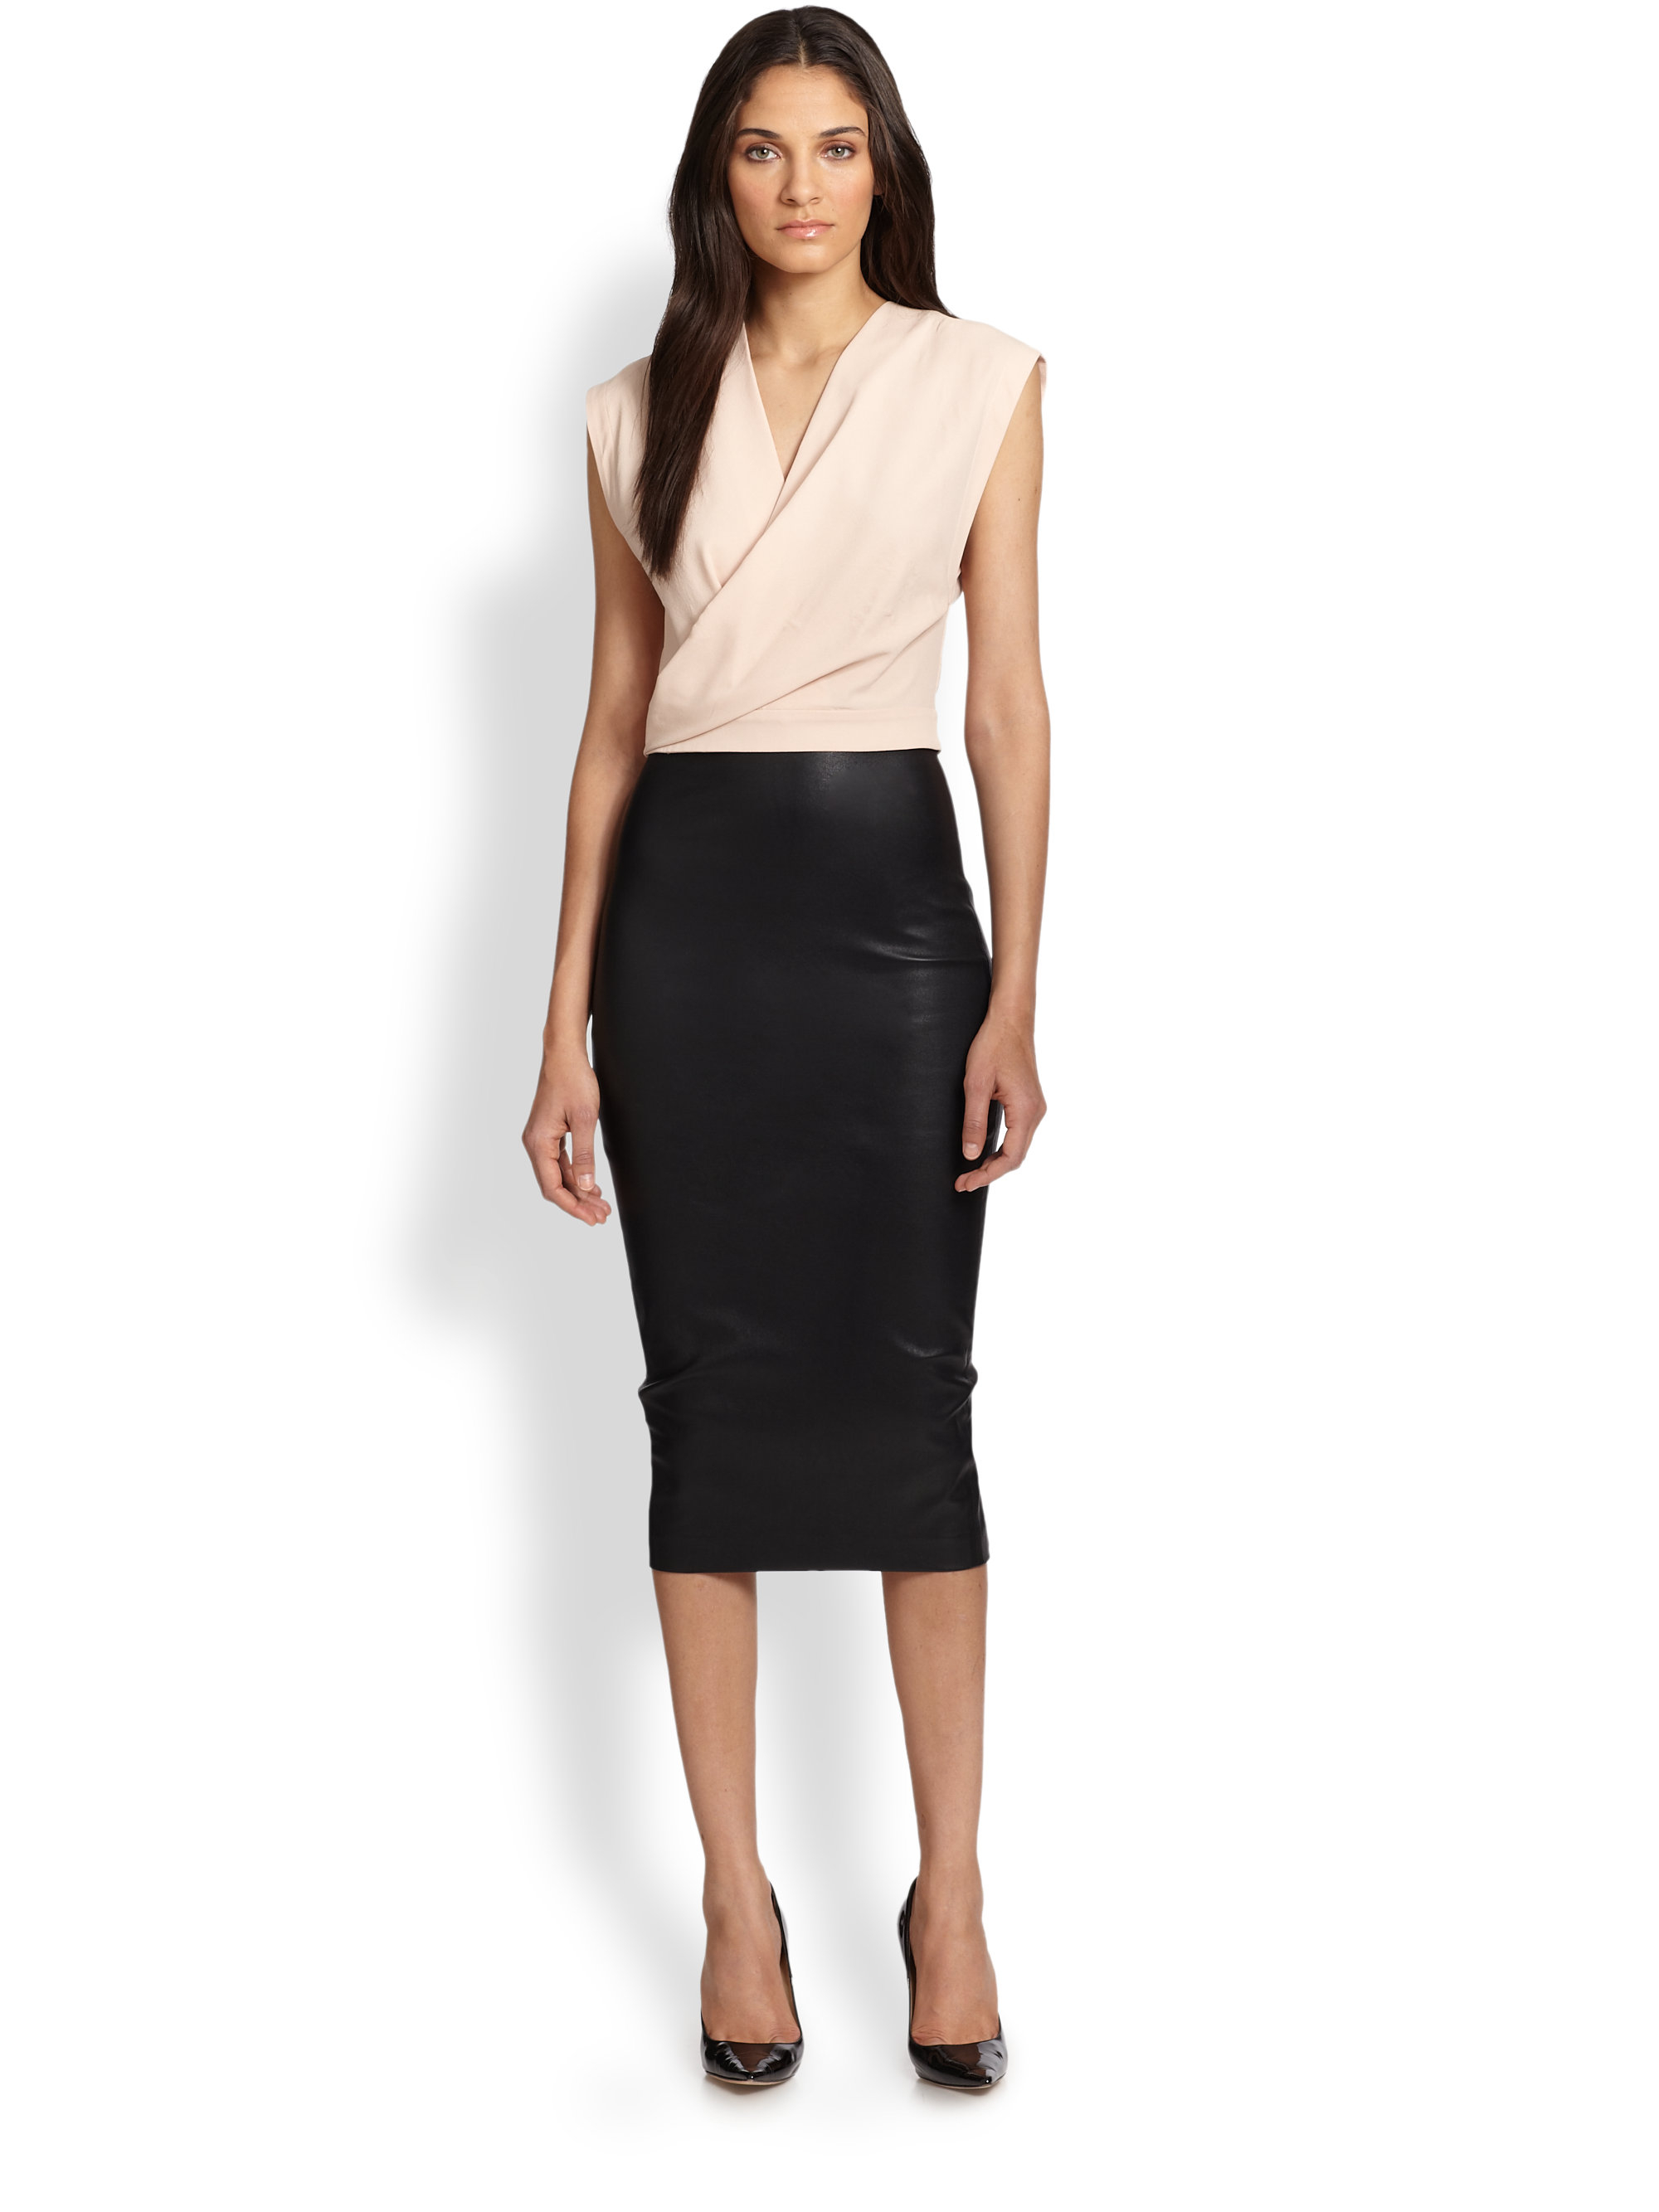 leather pencil skirt gallery UUOYETI